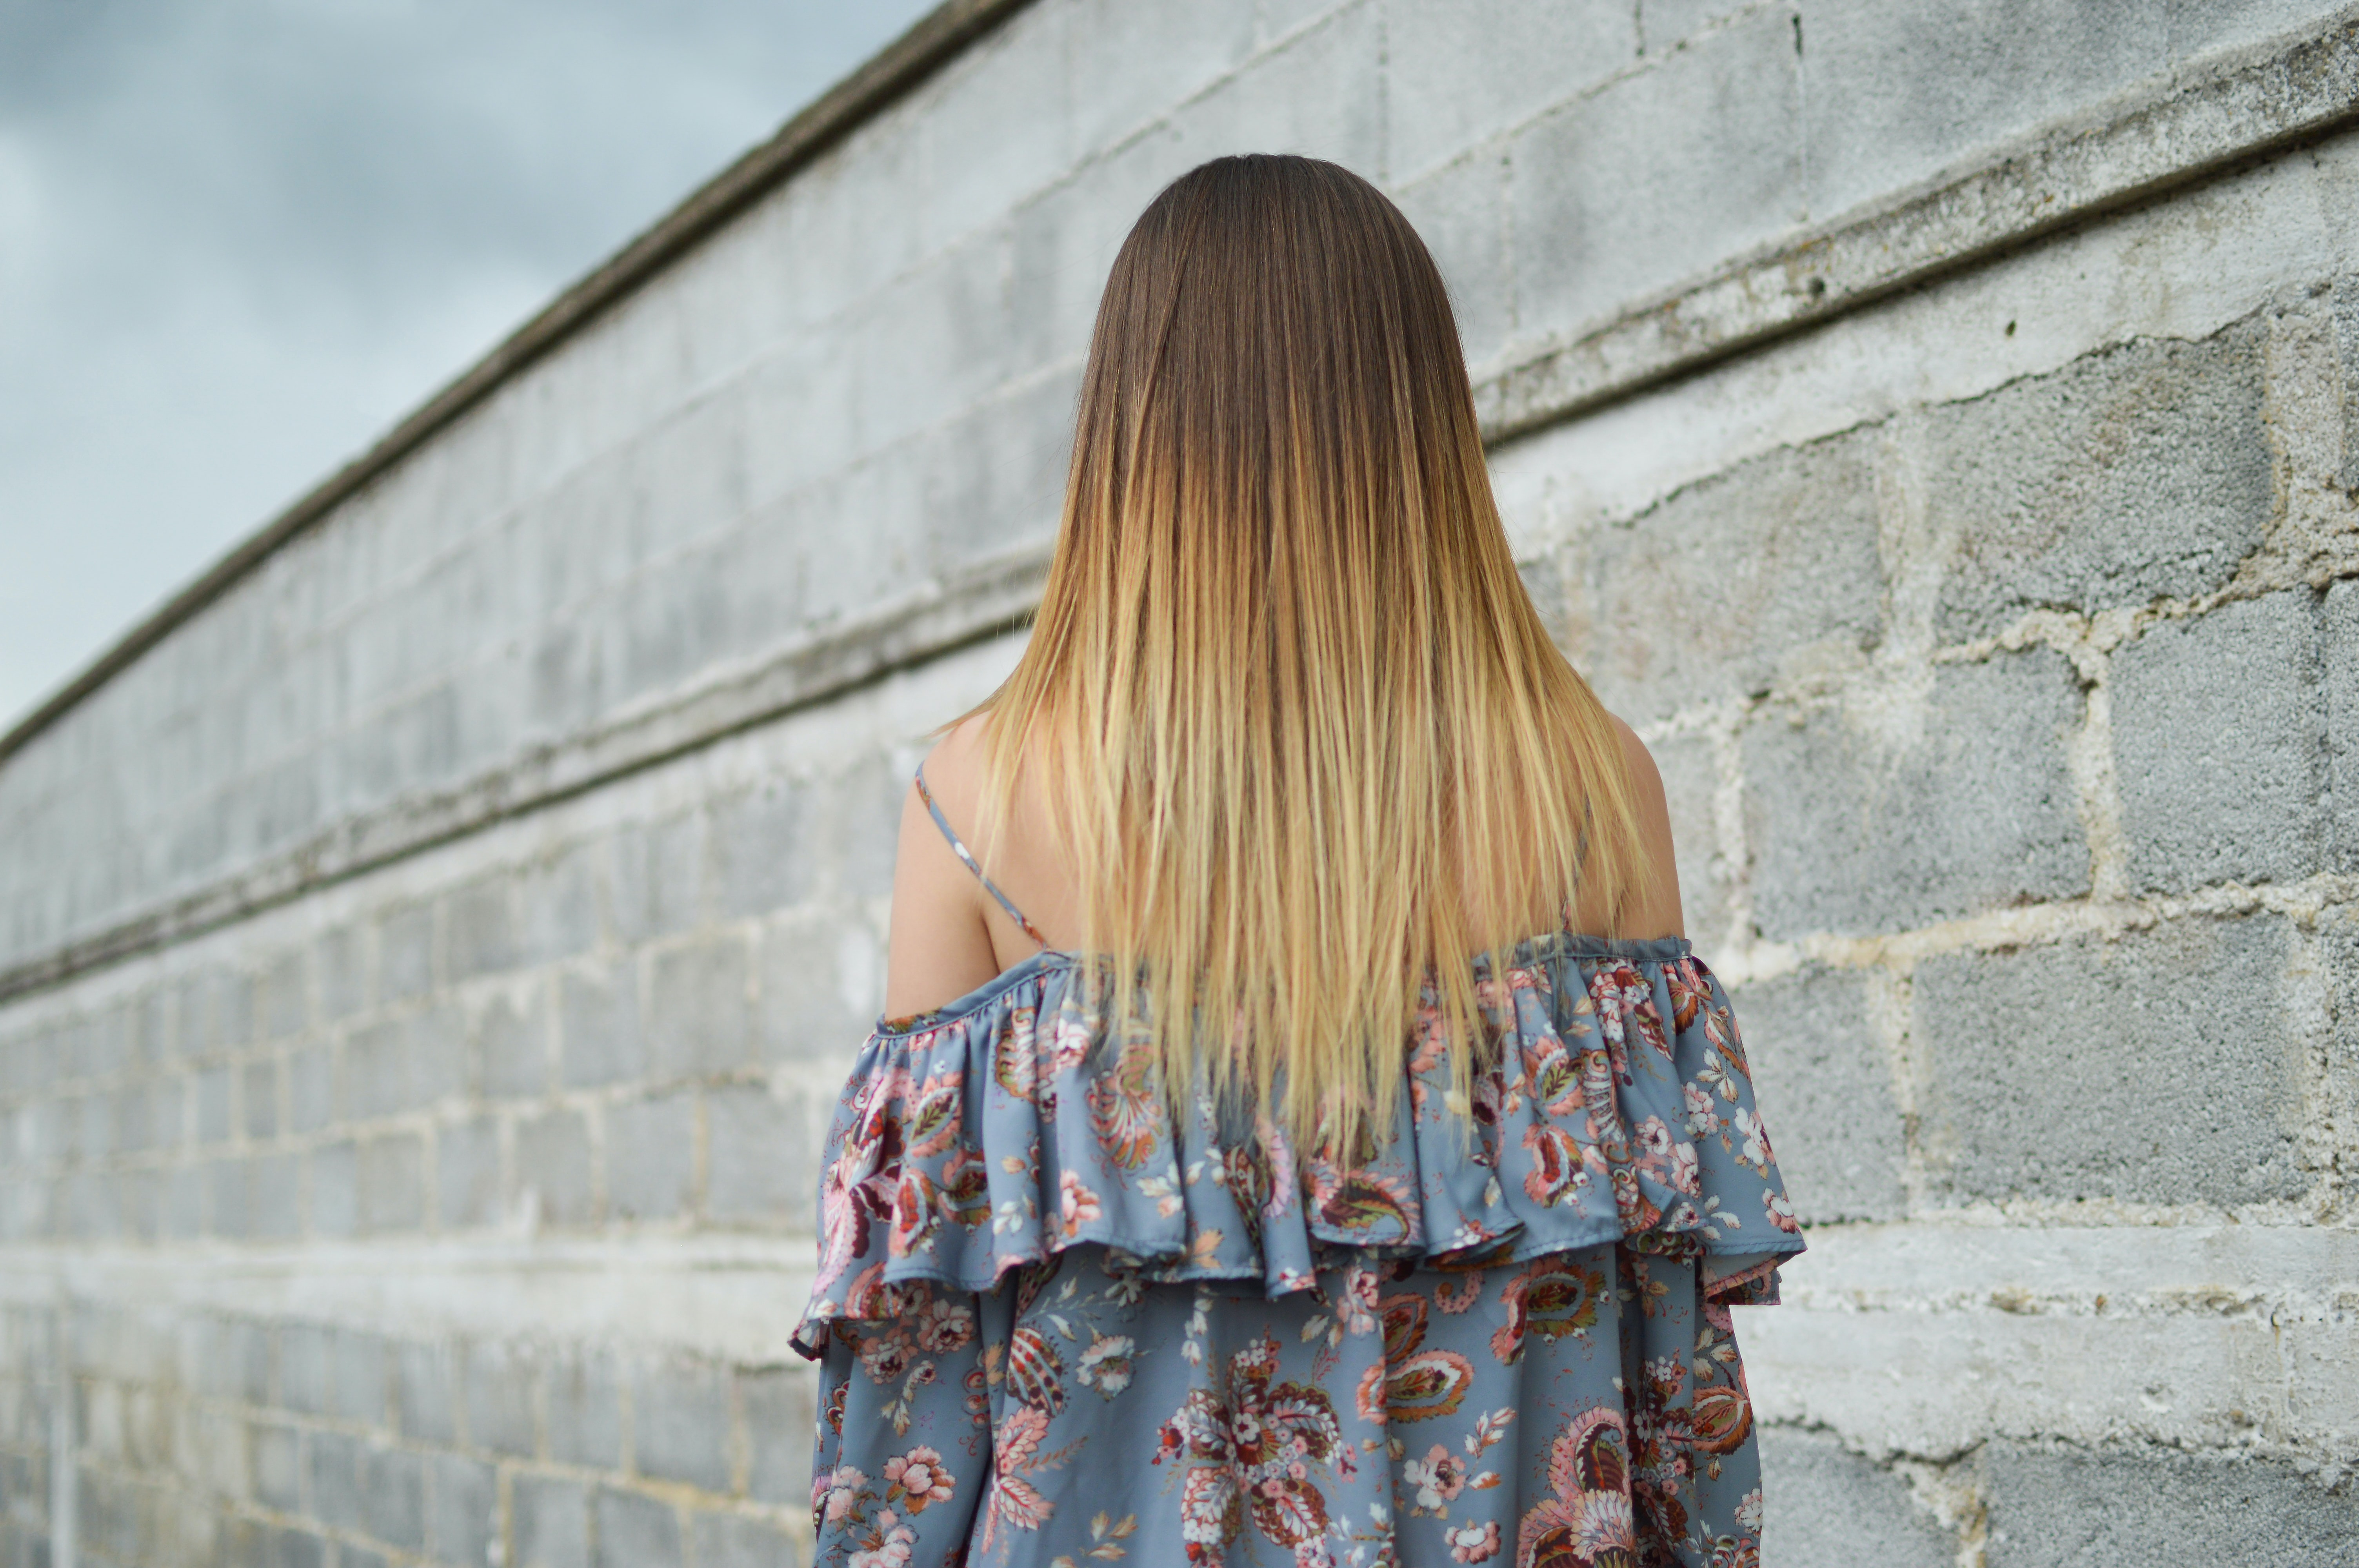 Brunette woman with blonde highlights a blue floral dress beside a stone wall under a gray sky